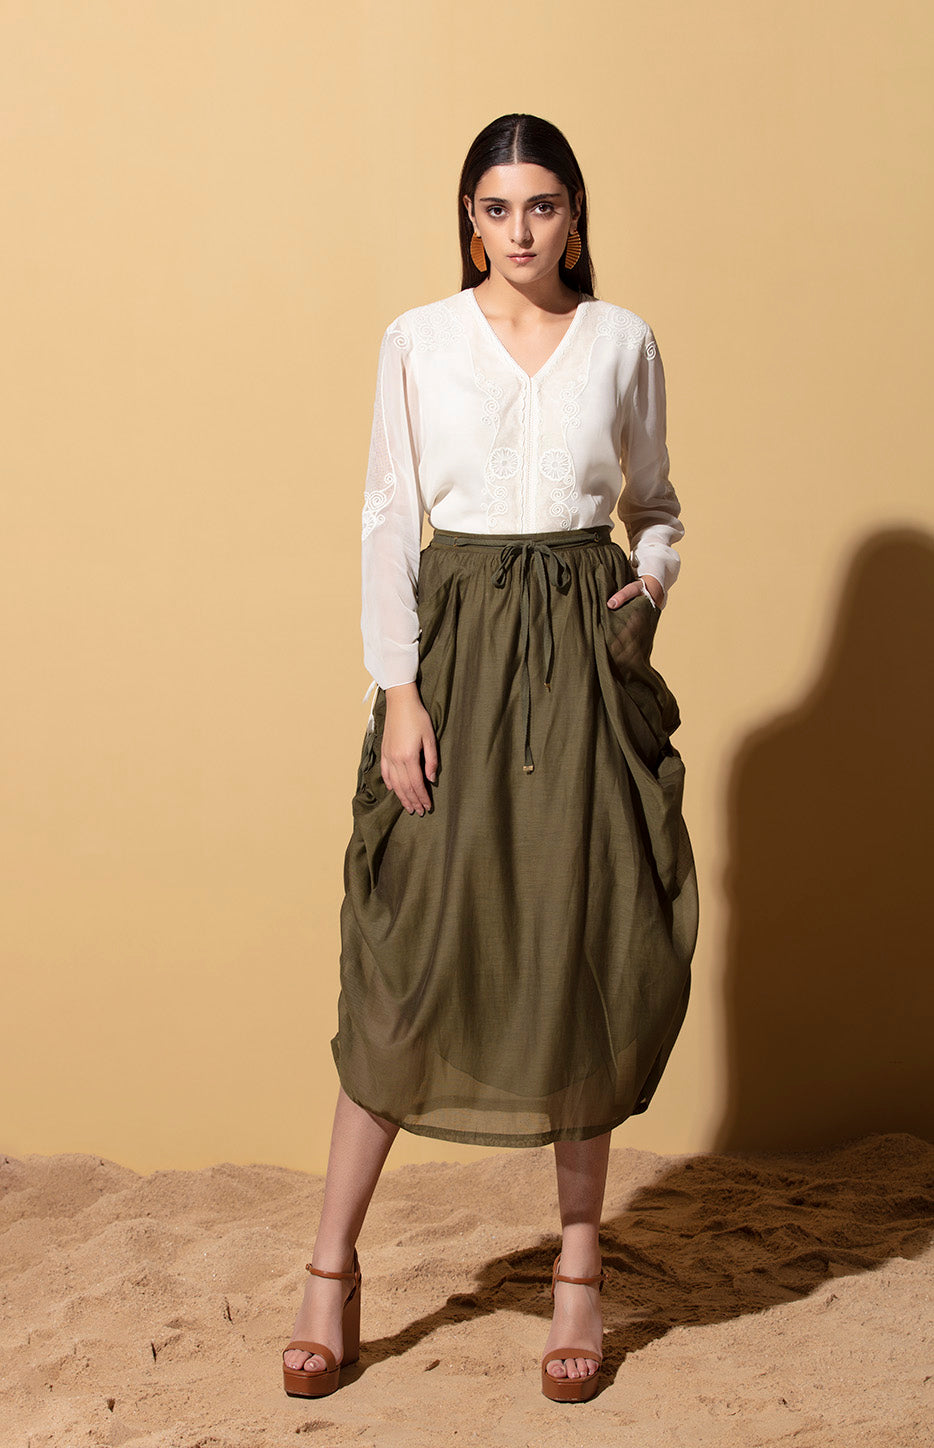 Ebele Olive Skirt in Thin Chanderi